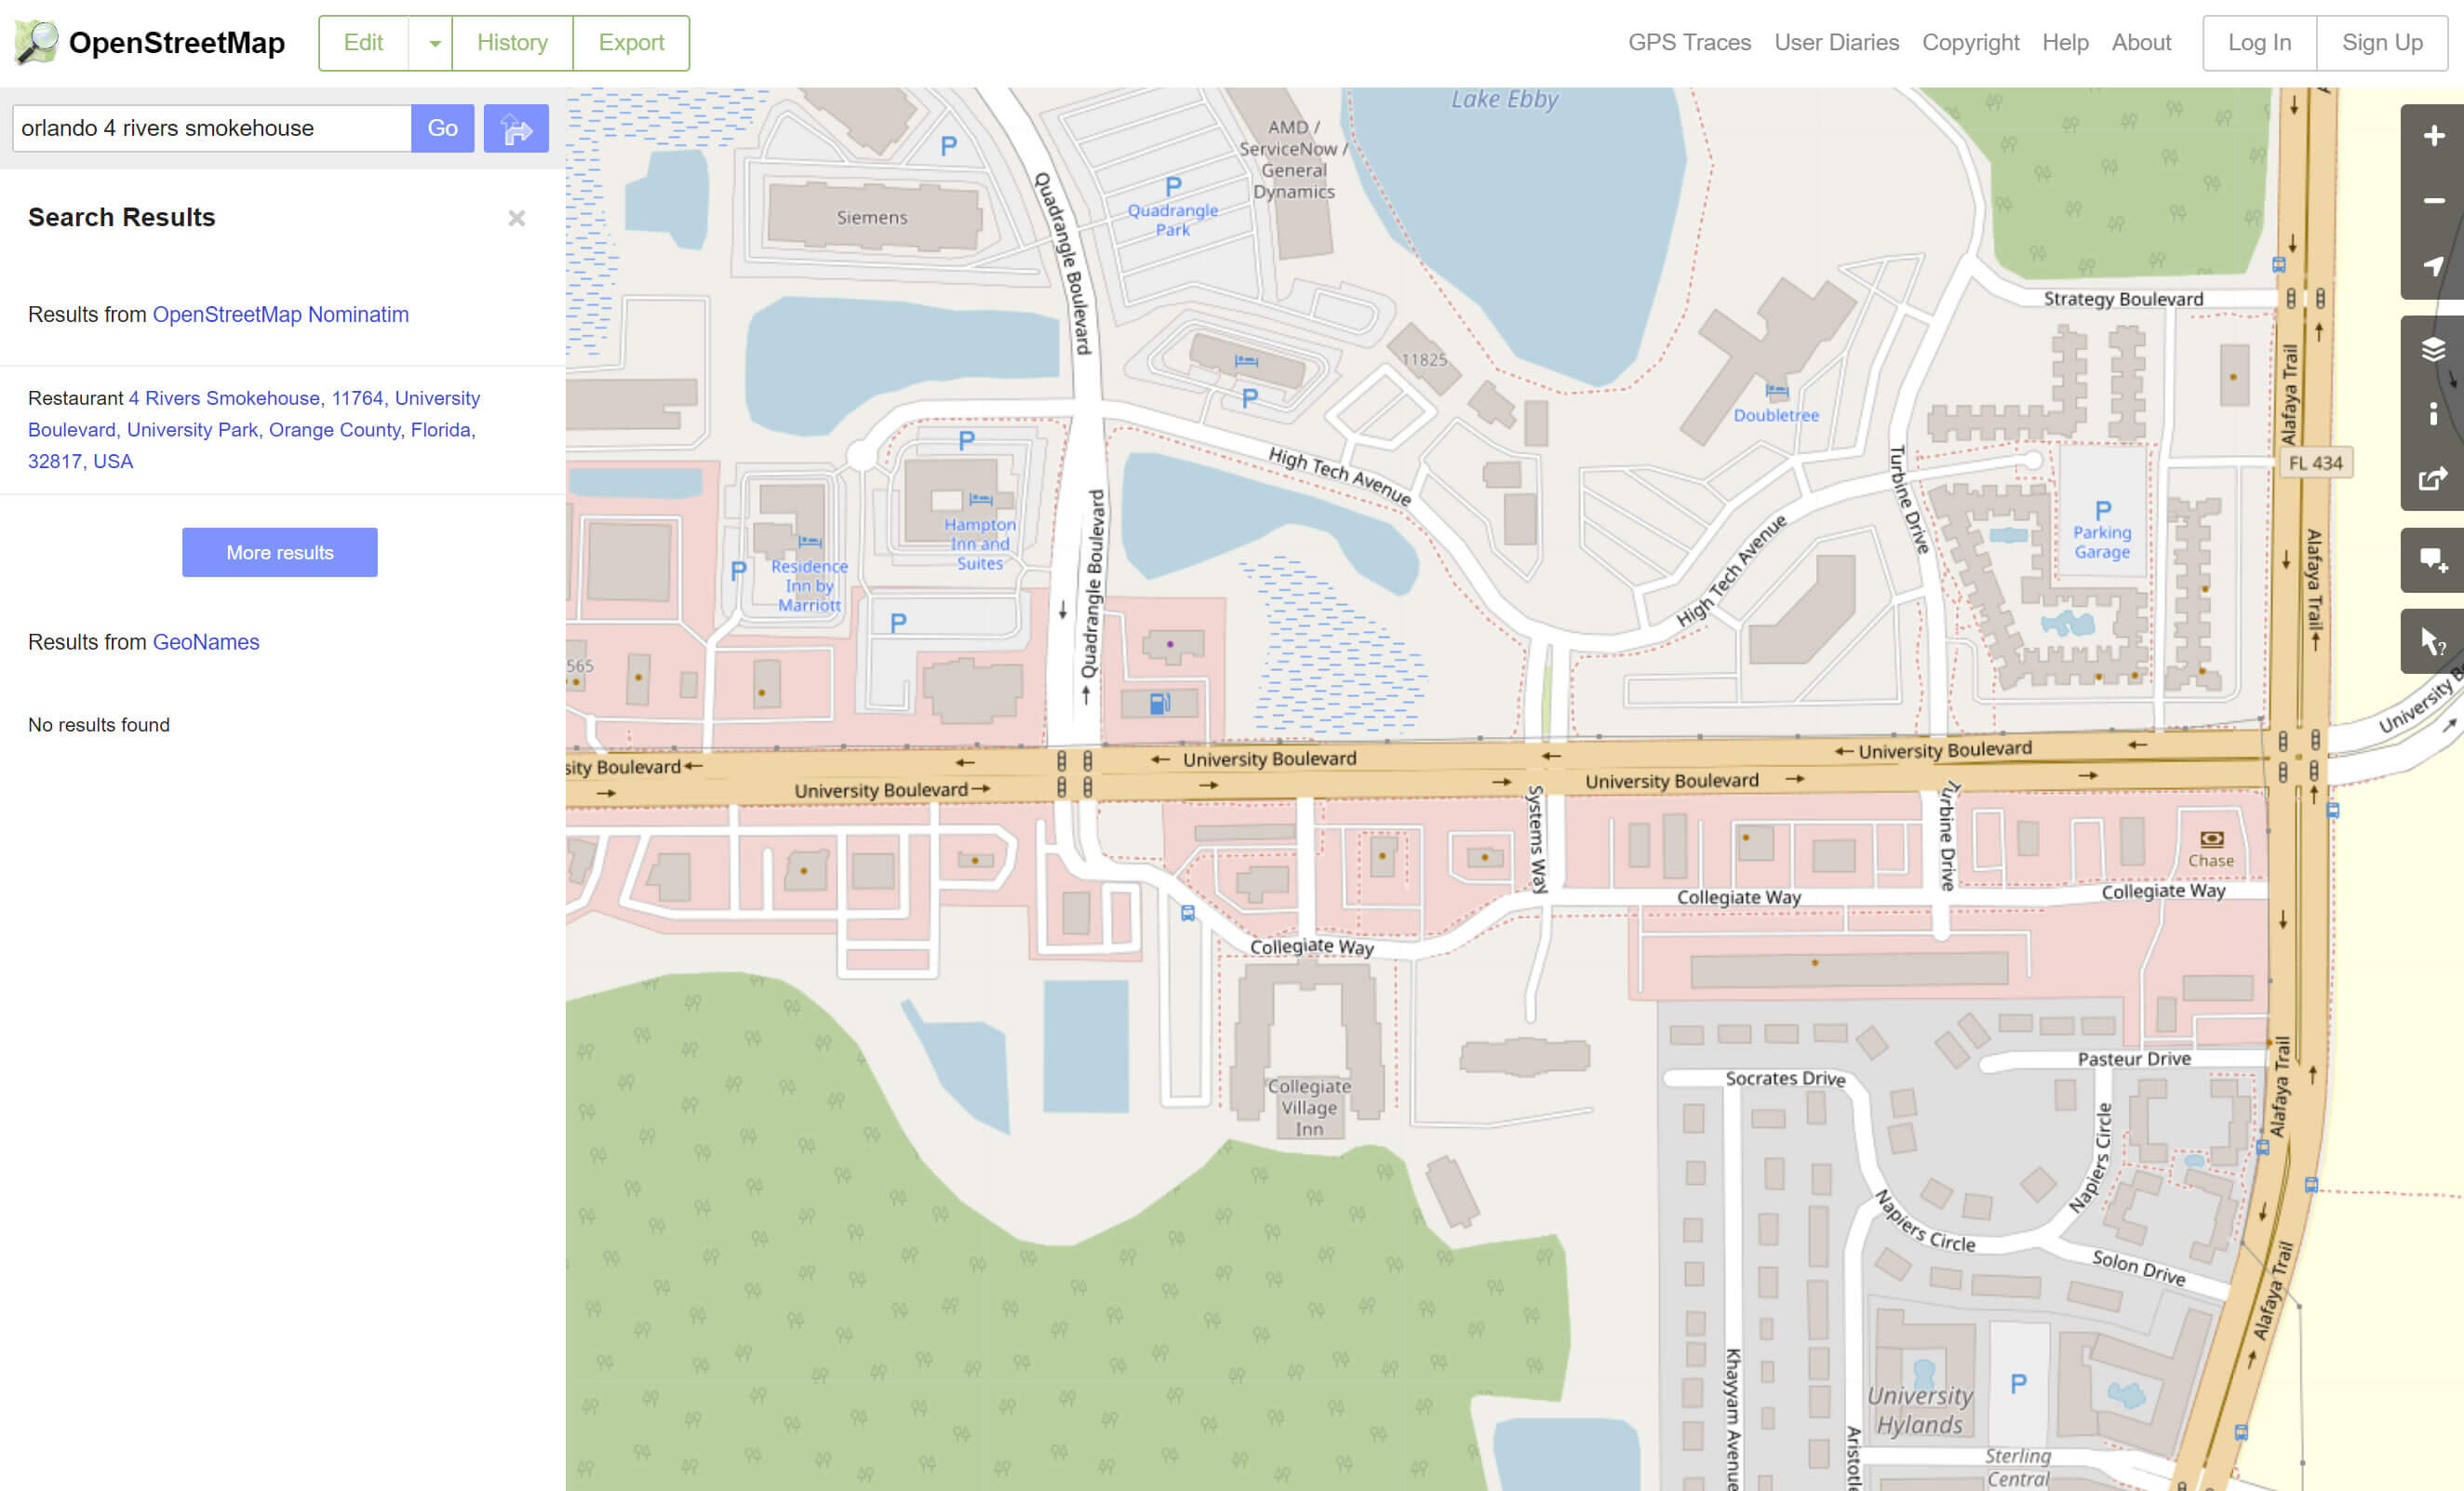 The complete list of alternatives to all Google products ... on amazon fire phone maps, gogole maps, road map usa states maps, online maps, topographic maps, bing maps, android maps, iphone maps, stanford university maps, search maps, ipad maps, googie maps, googlr maps, goolge maps, waze maps, msn maps, aerial maps, microsoft maps, gppgle maps, aeronautical maps,